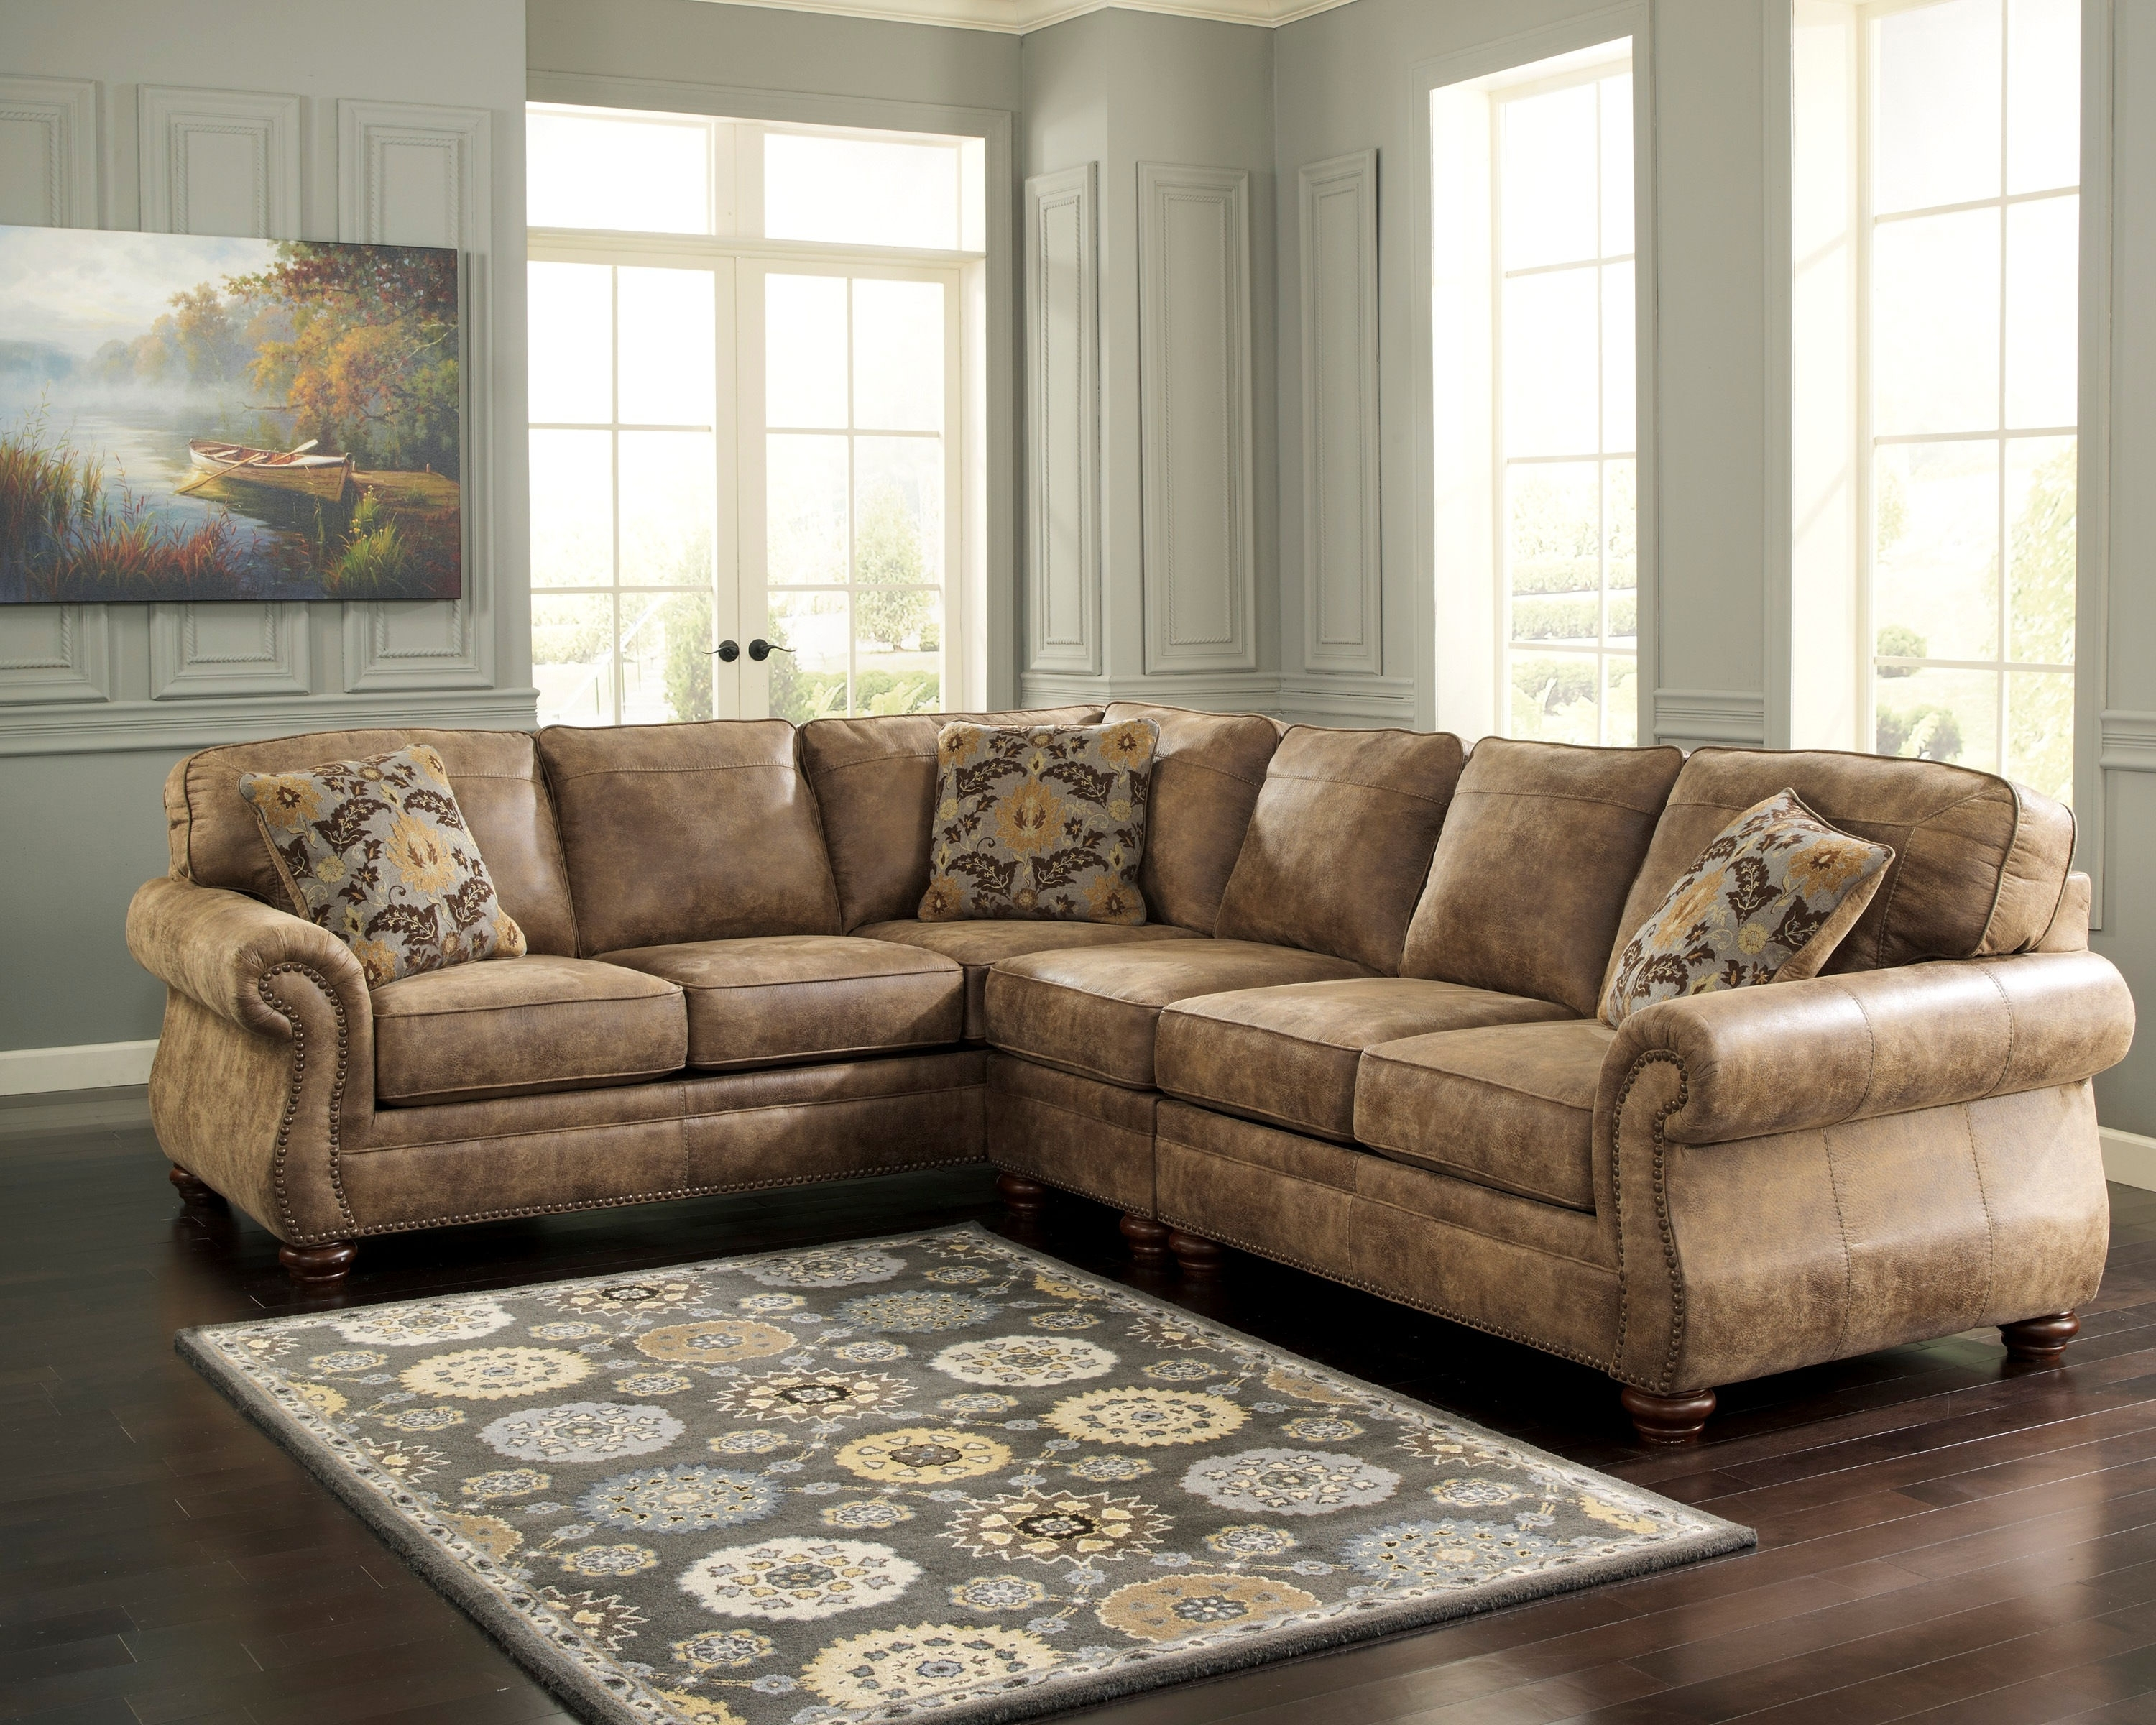 Laf Sofa Raf Loveseat | Baci Living Room With Turdur 3 Piece Sectionals With Raf Loveseat (View 9 of 25)